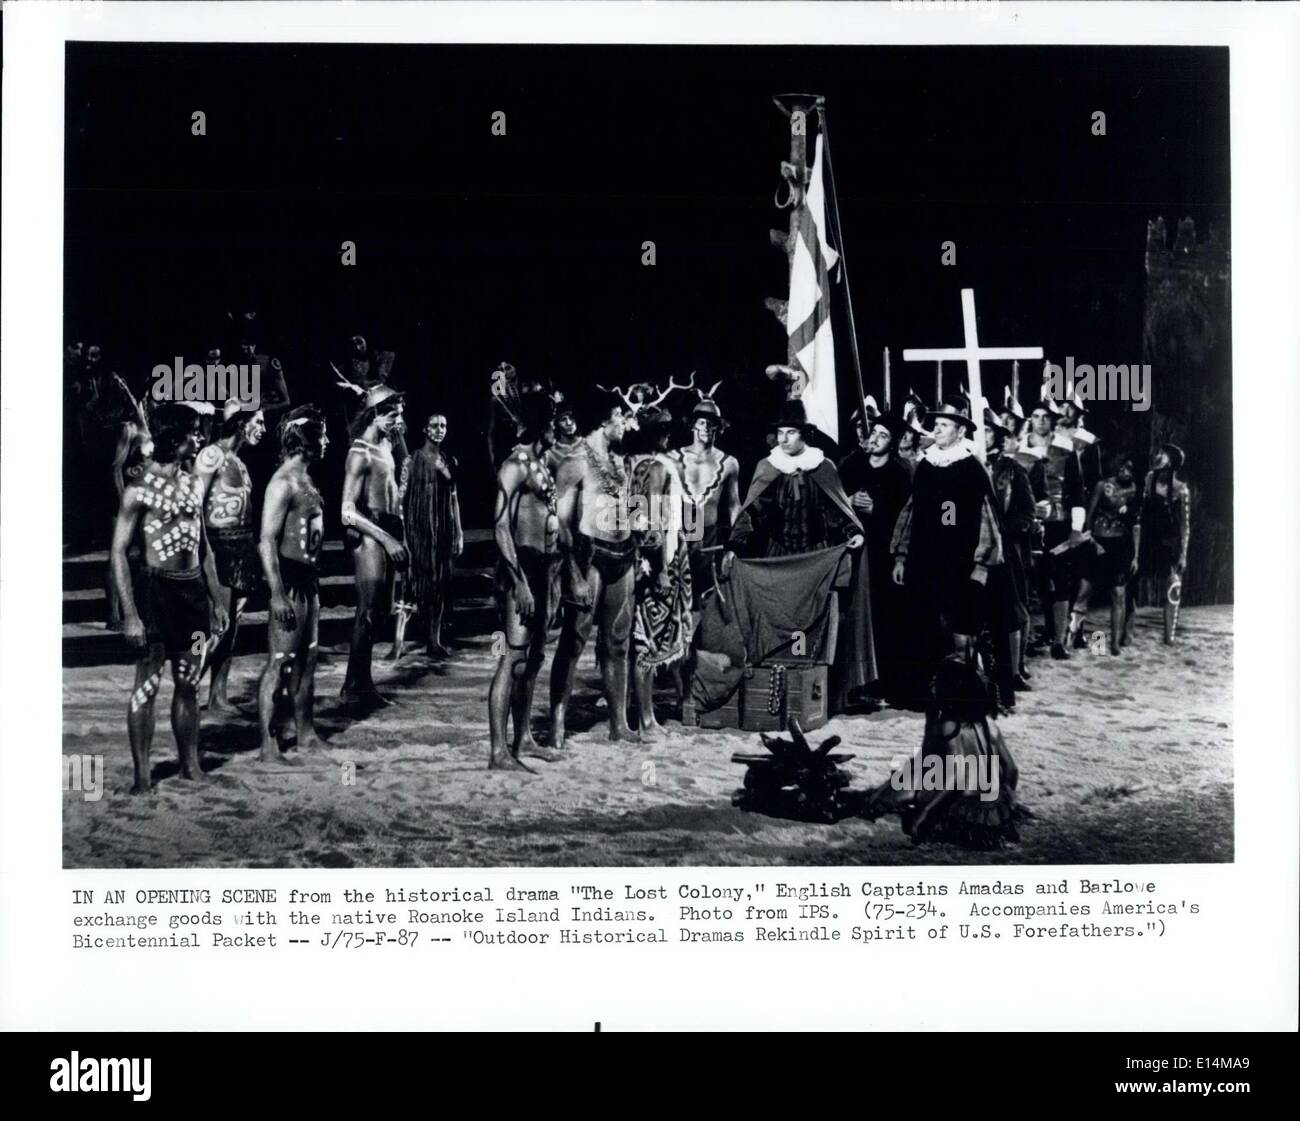 Apr. 05, 2012 - In An Opening Scene from the historical drama '' The Lost Colony,'' English Captains Amadas and Barloe exchange goods with the native Roanoke Island Indians. - Stock Image